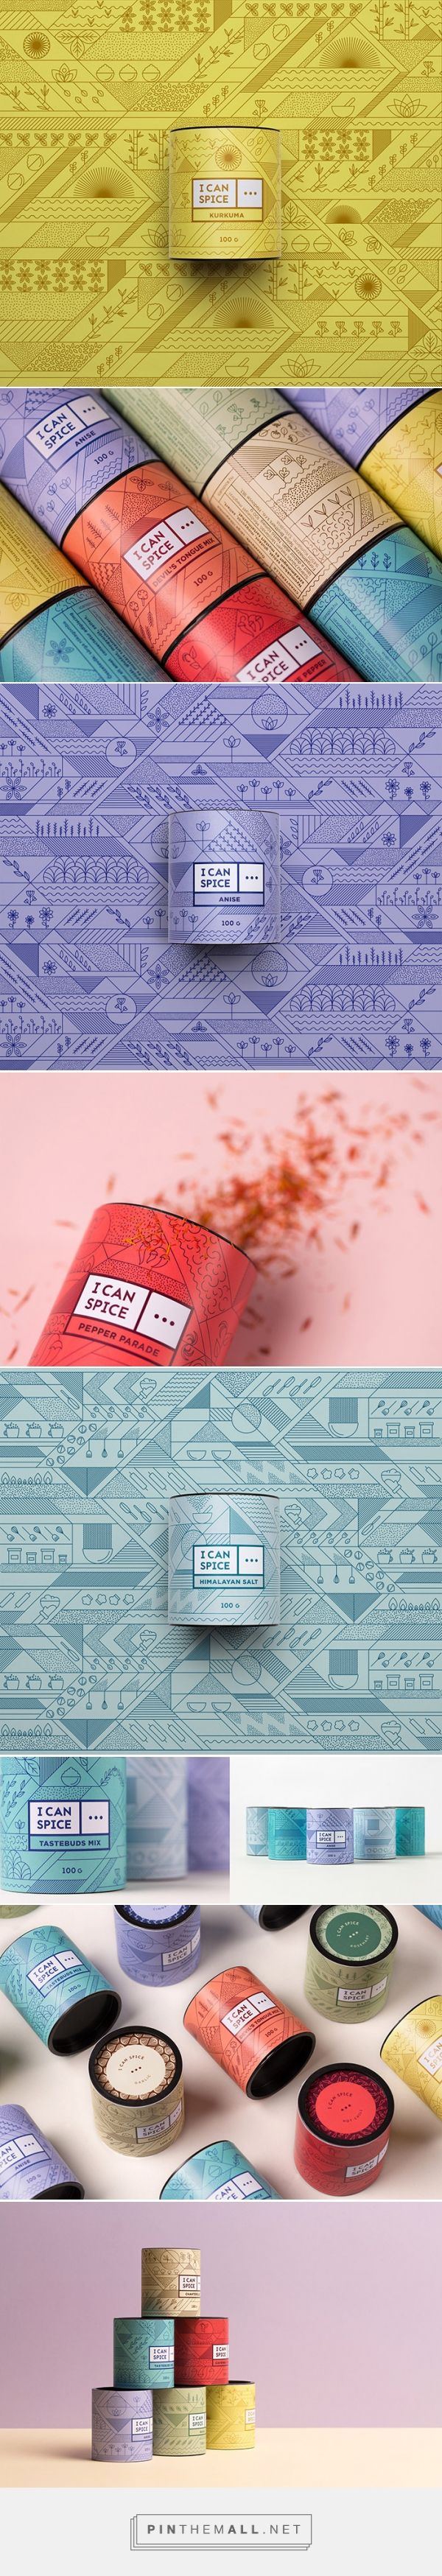 Colorful and eye-catching premium spice packaging #luxury #design #inspiration - Tap the link to shop on our official online store! You can also join our affiliate and/or rewards programs for FREE!